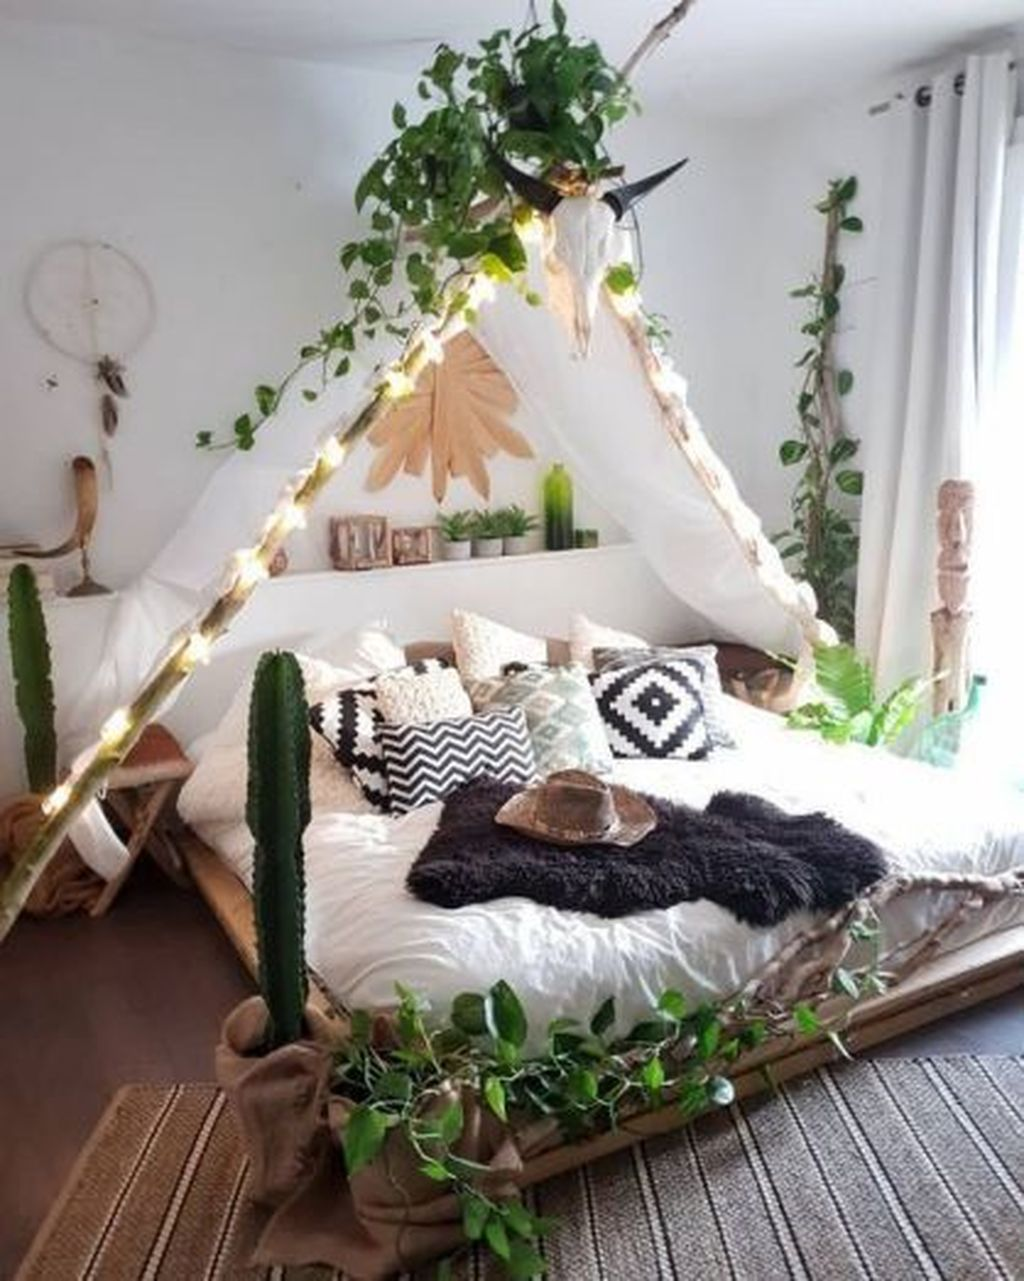 The Best DIY Bedroom Decor Ideas You Have To Try 15